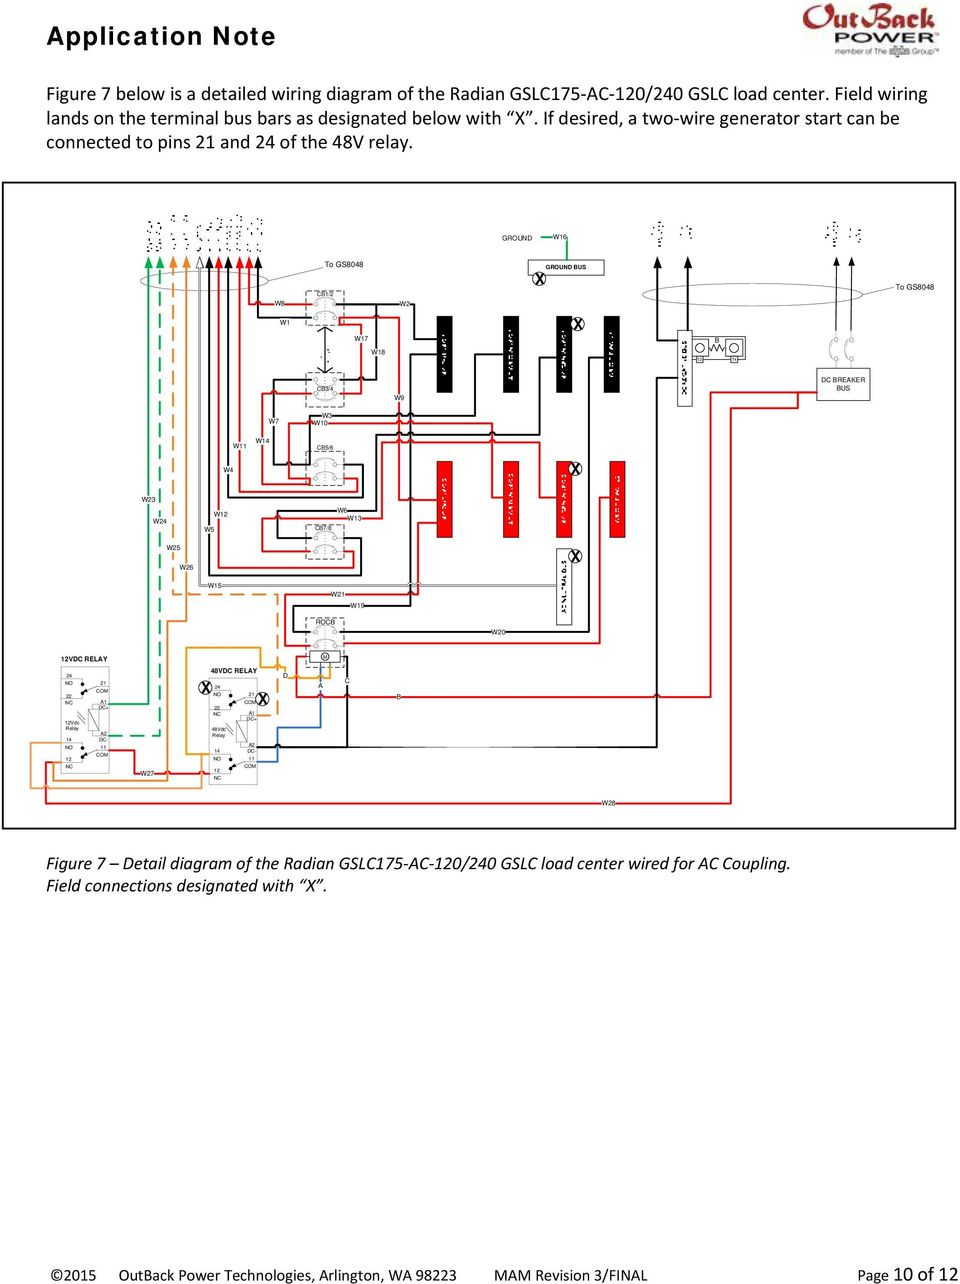 Ac Coupling Grid Tie Inverters With Outback Battery Based 10 Wire Generator Wiring Diagram Ground W16 W8 To Gs8048 Cb1 2 W2 Bus W1 W17 B